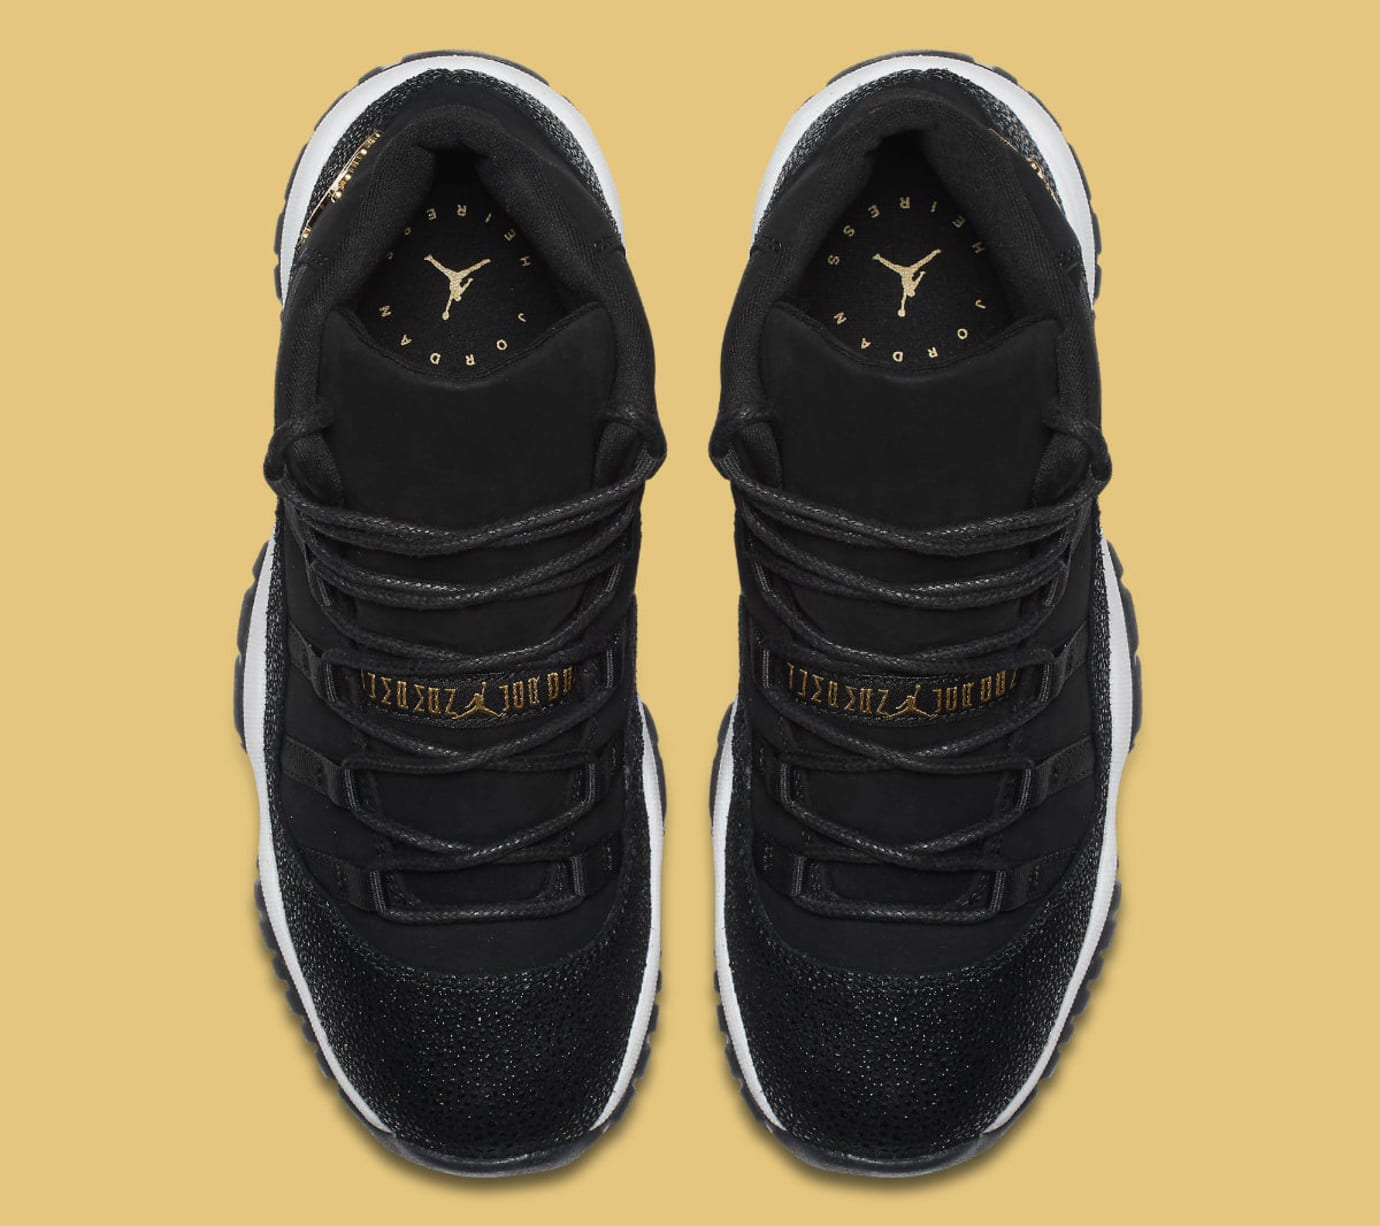 save off d542a 22ea1 Air Jordan 11 XI Heiress Collection Black/Gold Release Date 852625 ...